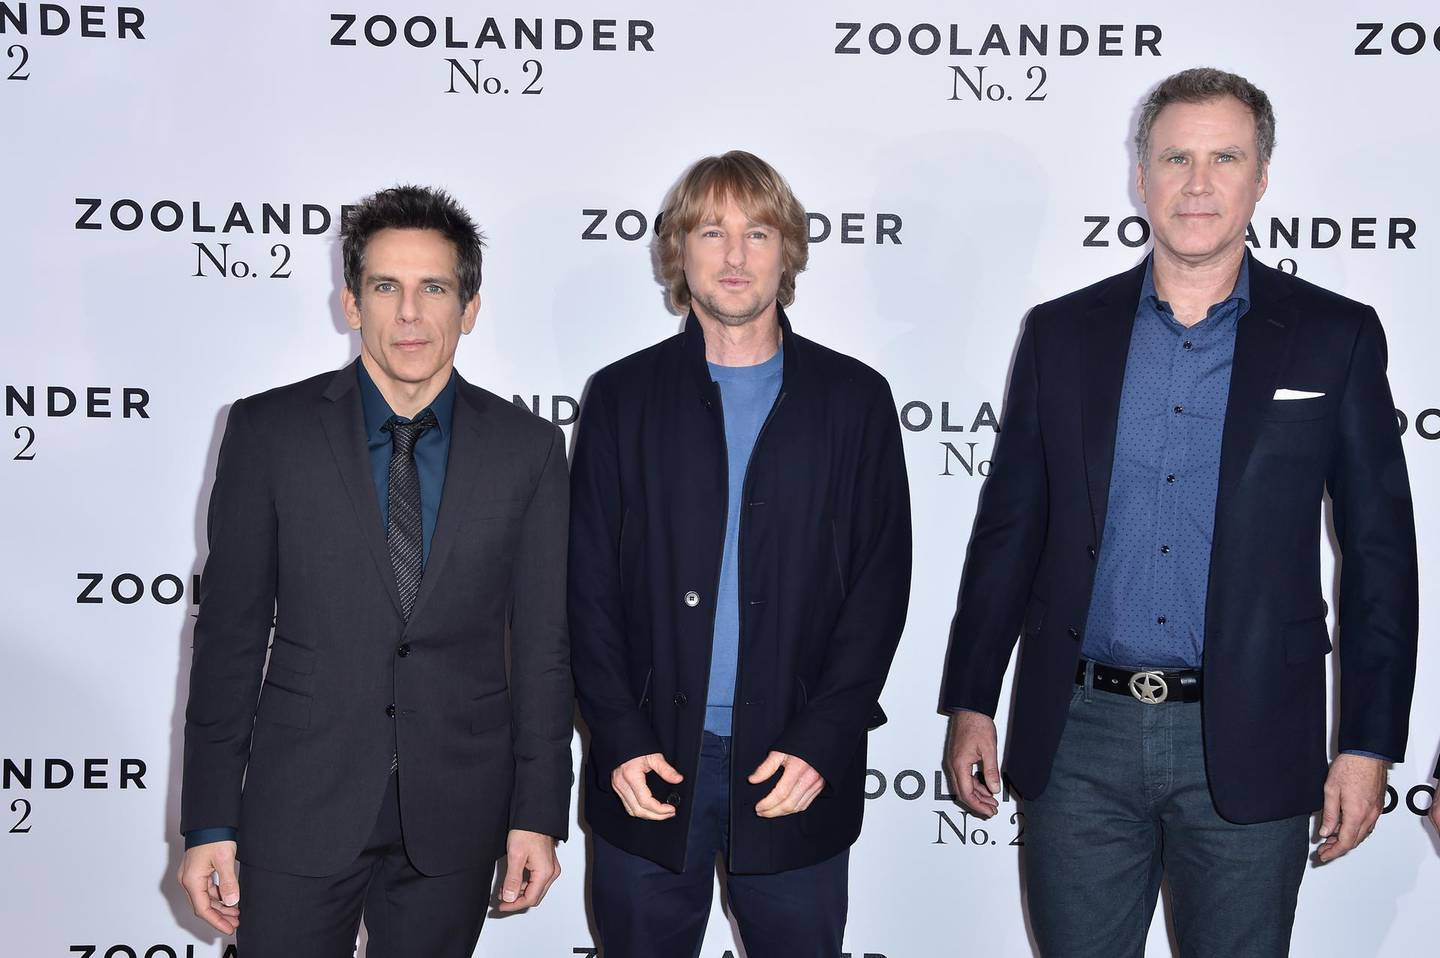 """PARIS, FRANCE - JANUARY 29:  Ben Stiller,Owen Wilson and Will Ferrell attend the Photocall  ahead of the Paris Fan Screening of the Paramount Pictures film """"Zoolander No. 2""""  at Hotel Plaza Athenee on January 29, 2016 in Paris, France.  (Photo by Pascal Le Segretain/Getty Images For Paramount)"""